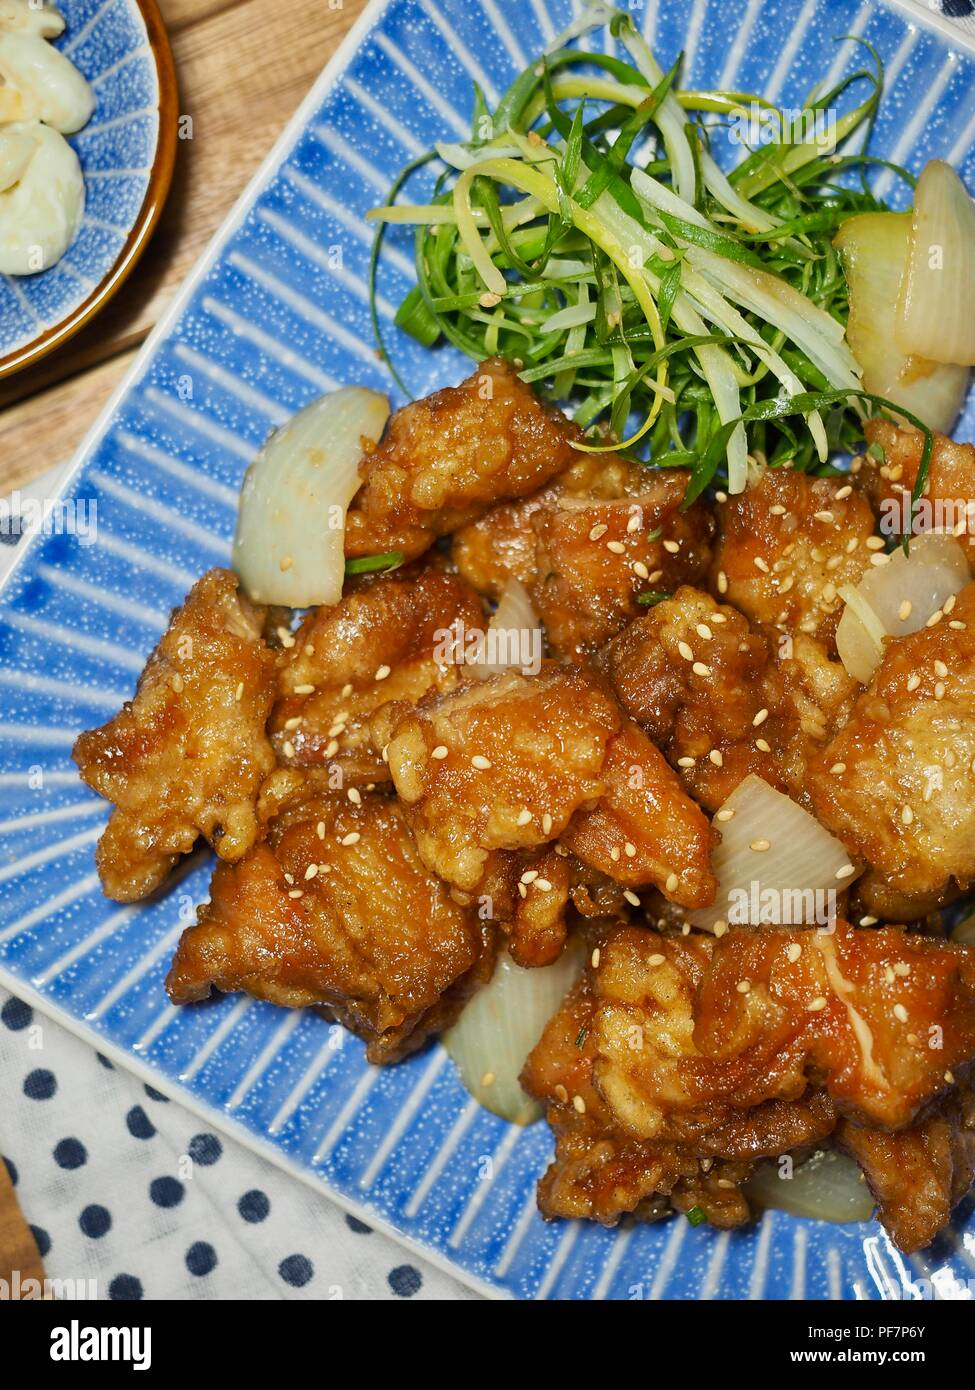 Sweet and sour chicken - Stock Image